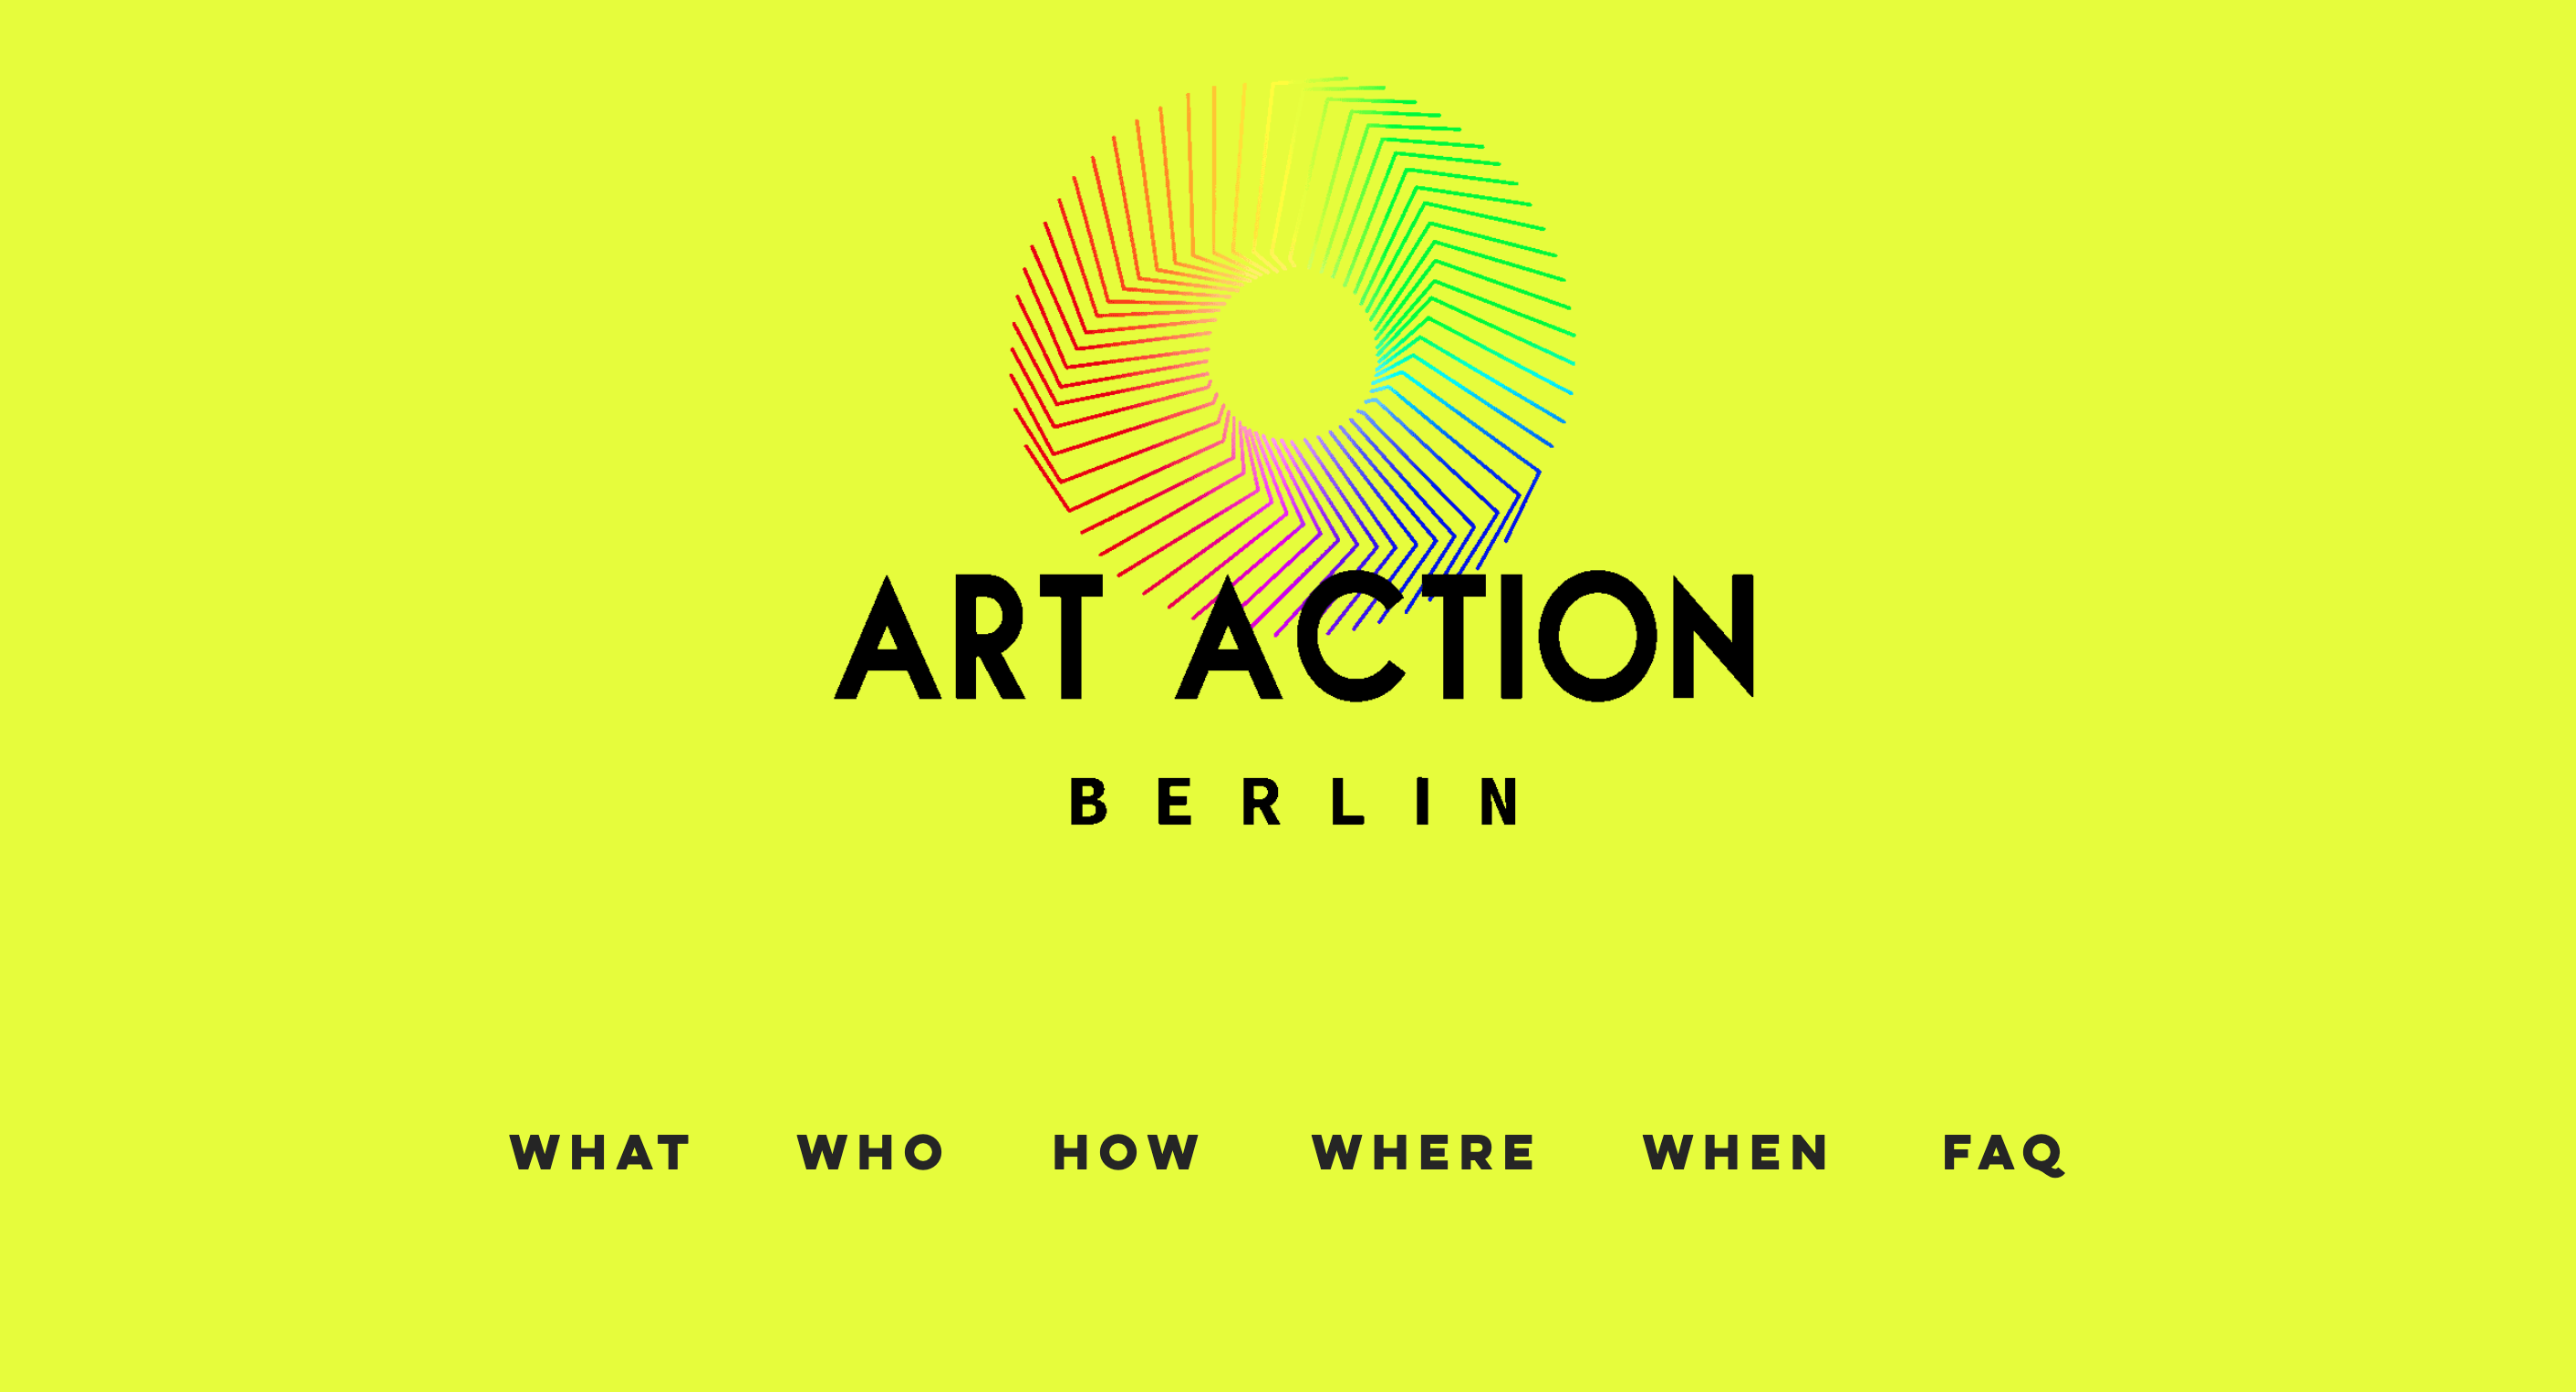 art action berlin charity fundraiser donate art spaces berlin save art berlin 2020 coronavirus